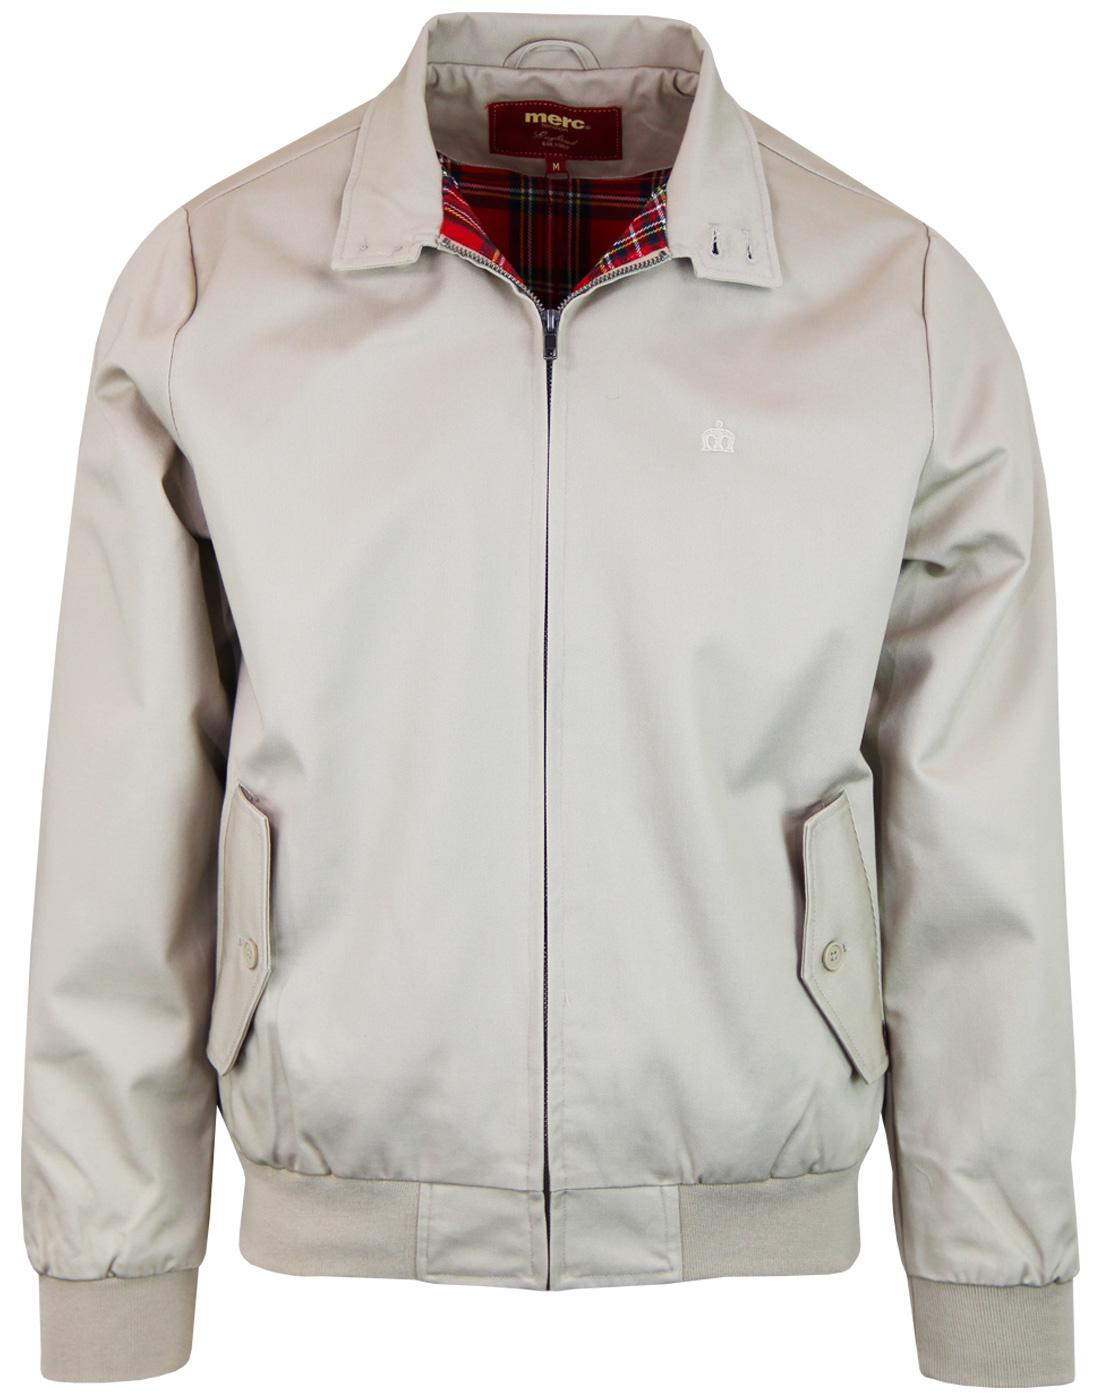 MERC Retro Mod Classic Harrington Jacket (BEIGE)